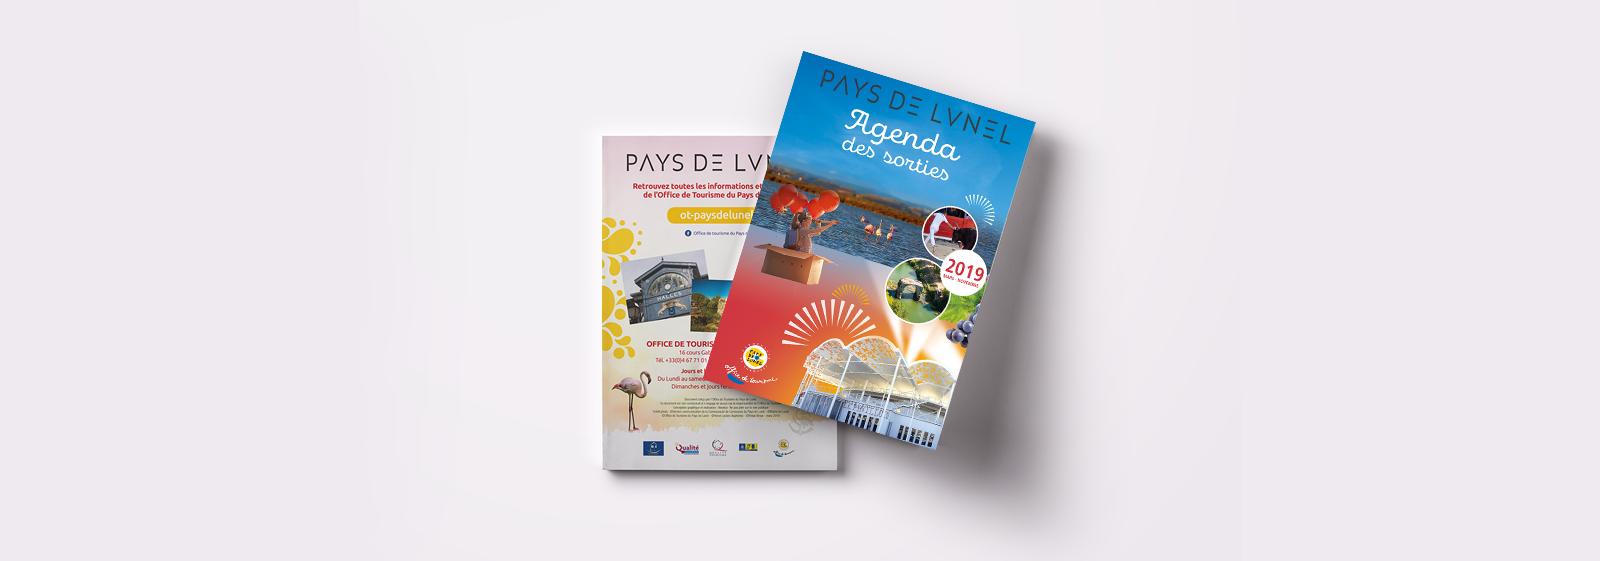 Agenda Office du tourisme - Lunel